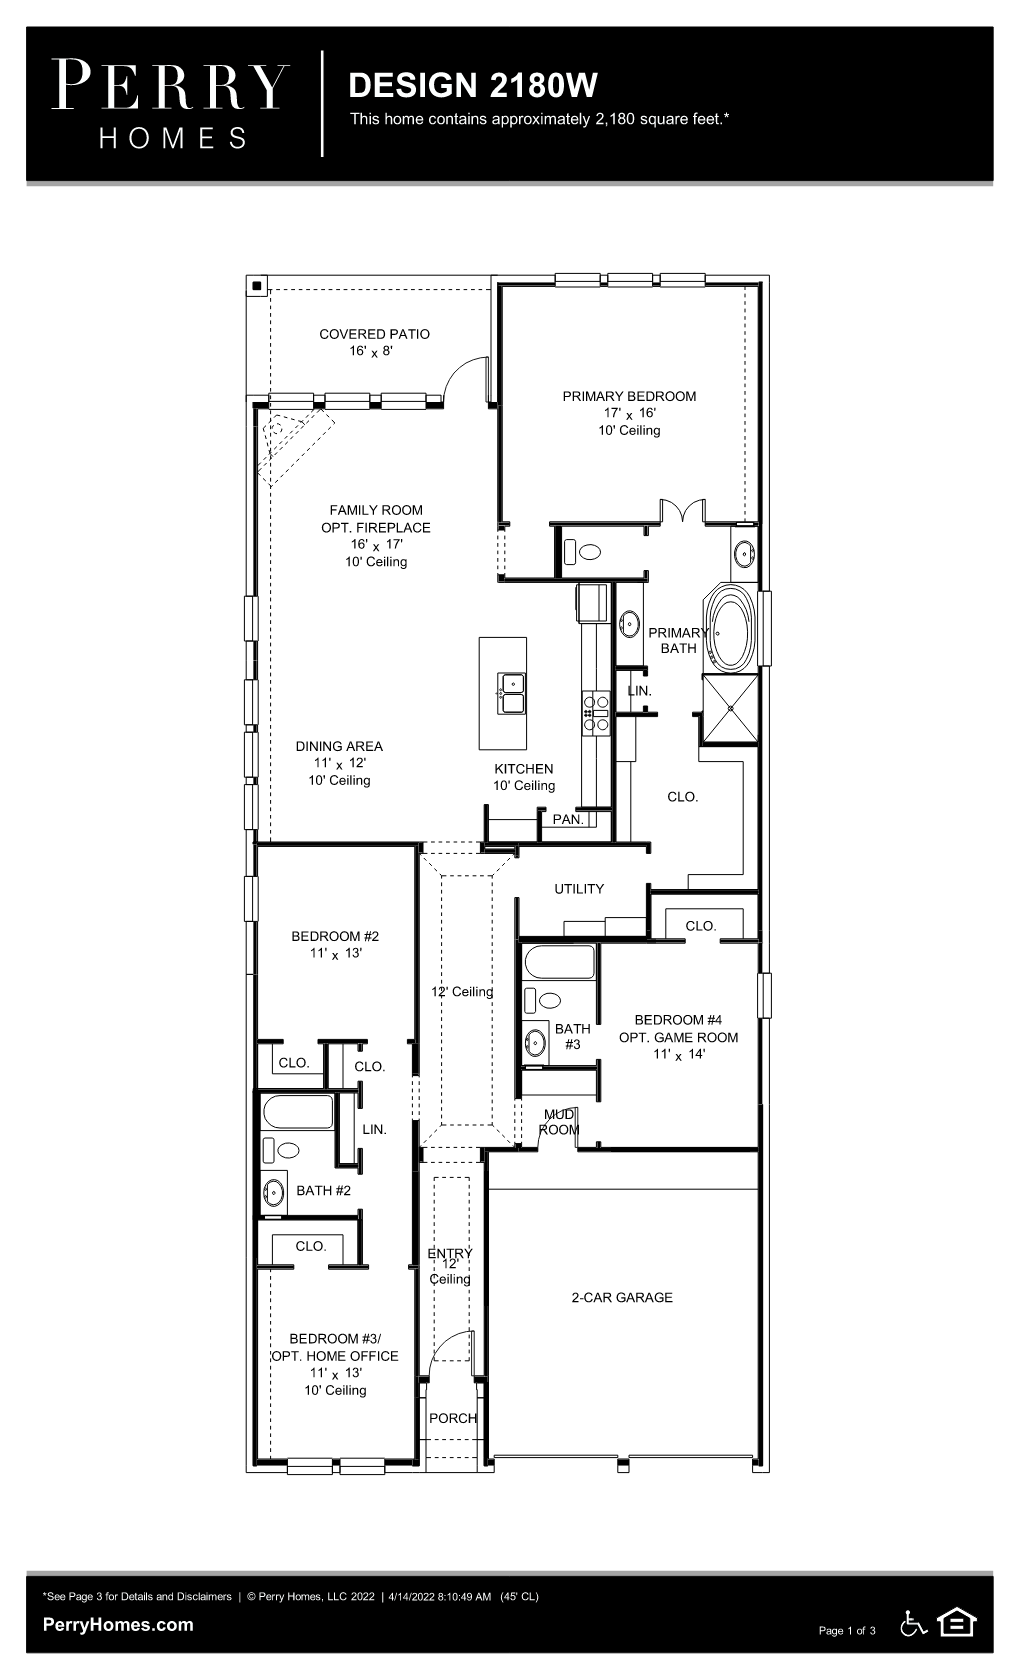 Floor Plan for 2180W